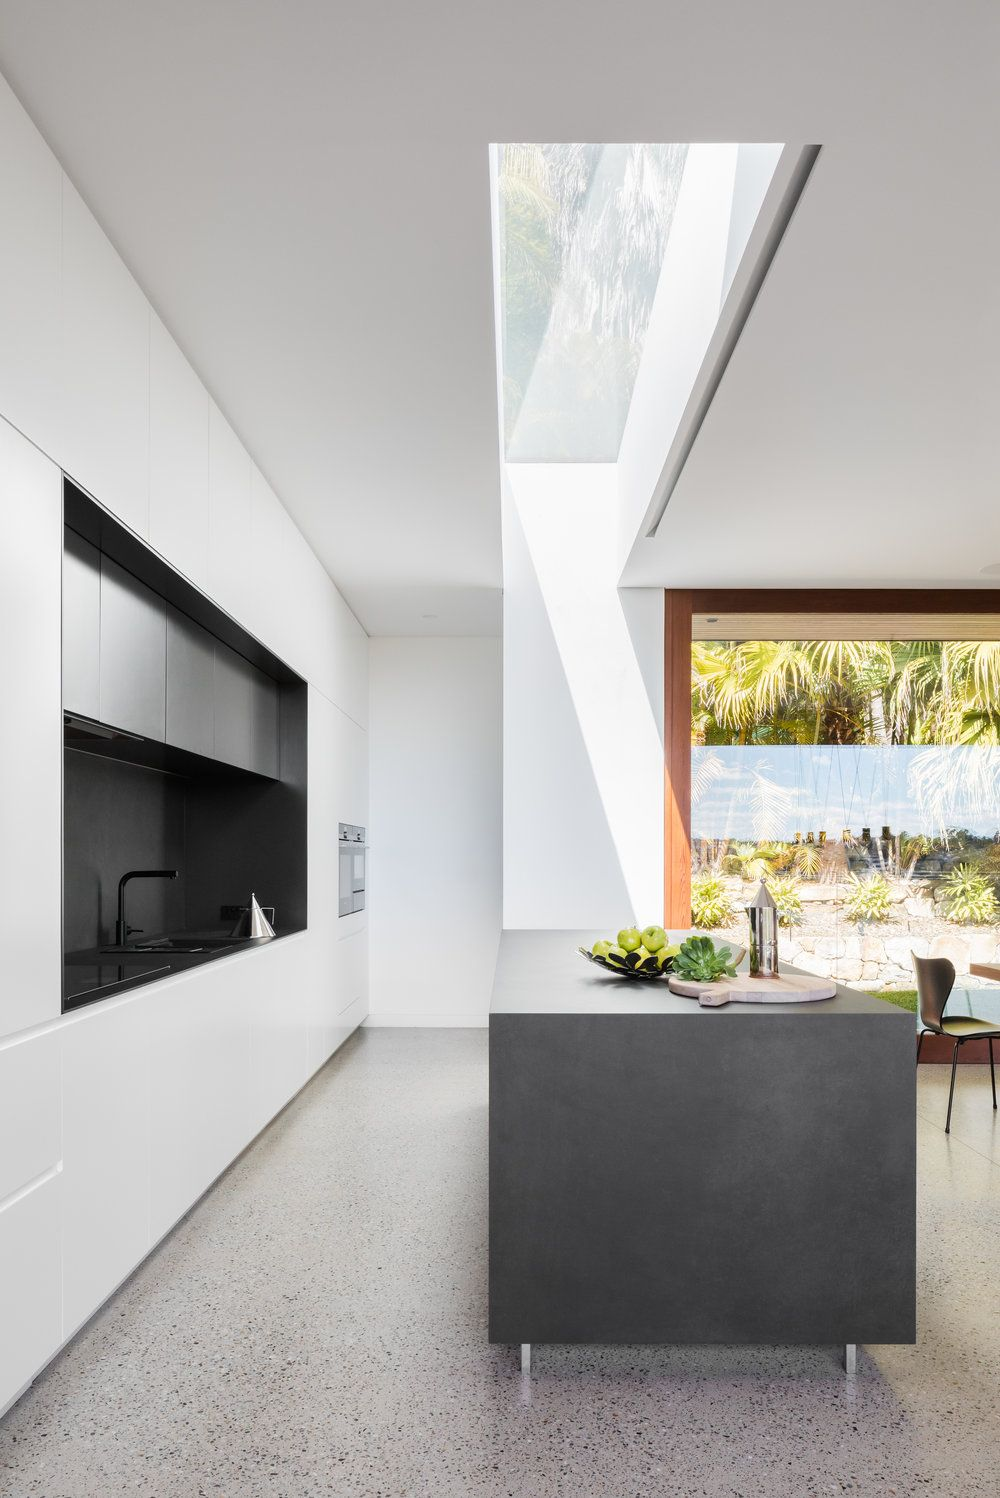 H House | Cladding, North shore and Sydney australia